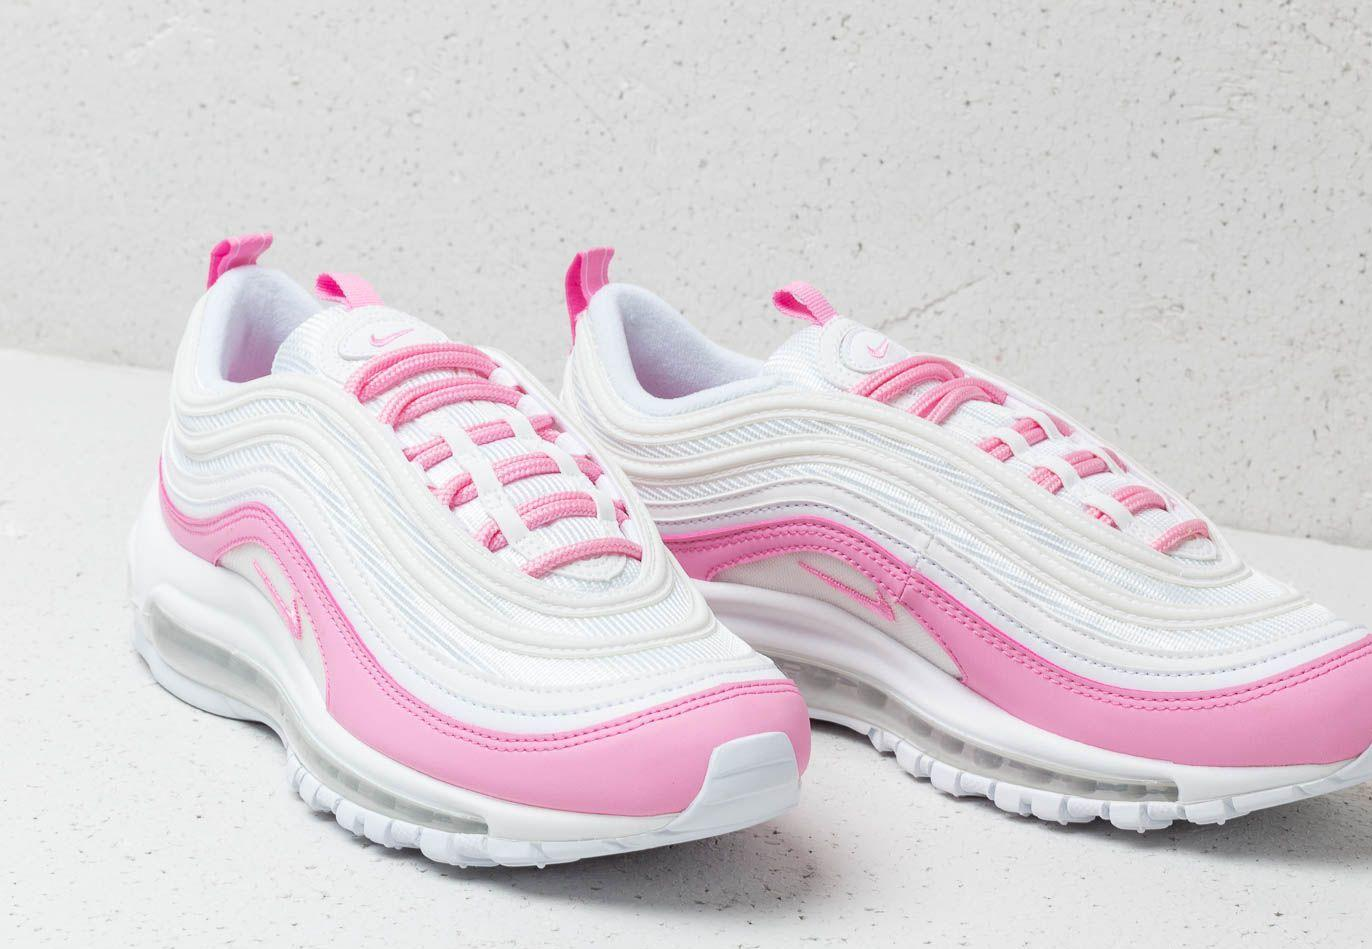 b4648b2291 Nike W Air Max 97 Ess White/ Psychic Pink in White - Save 22% - Lyst